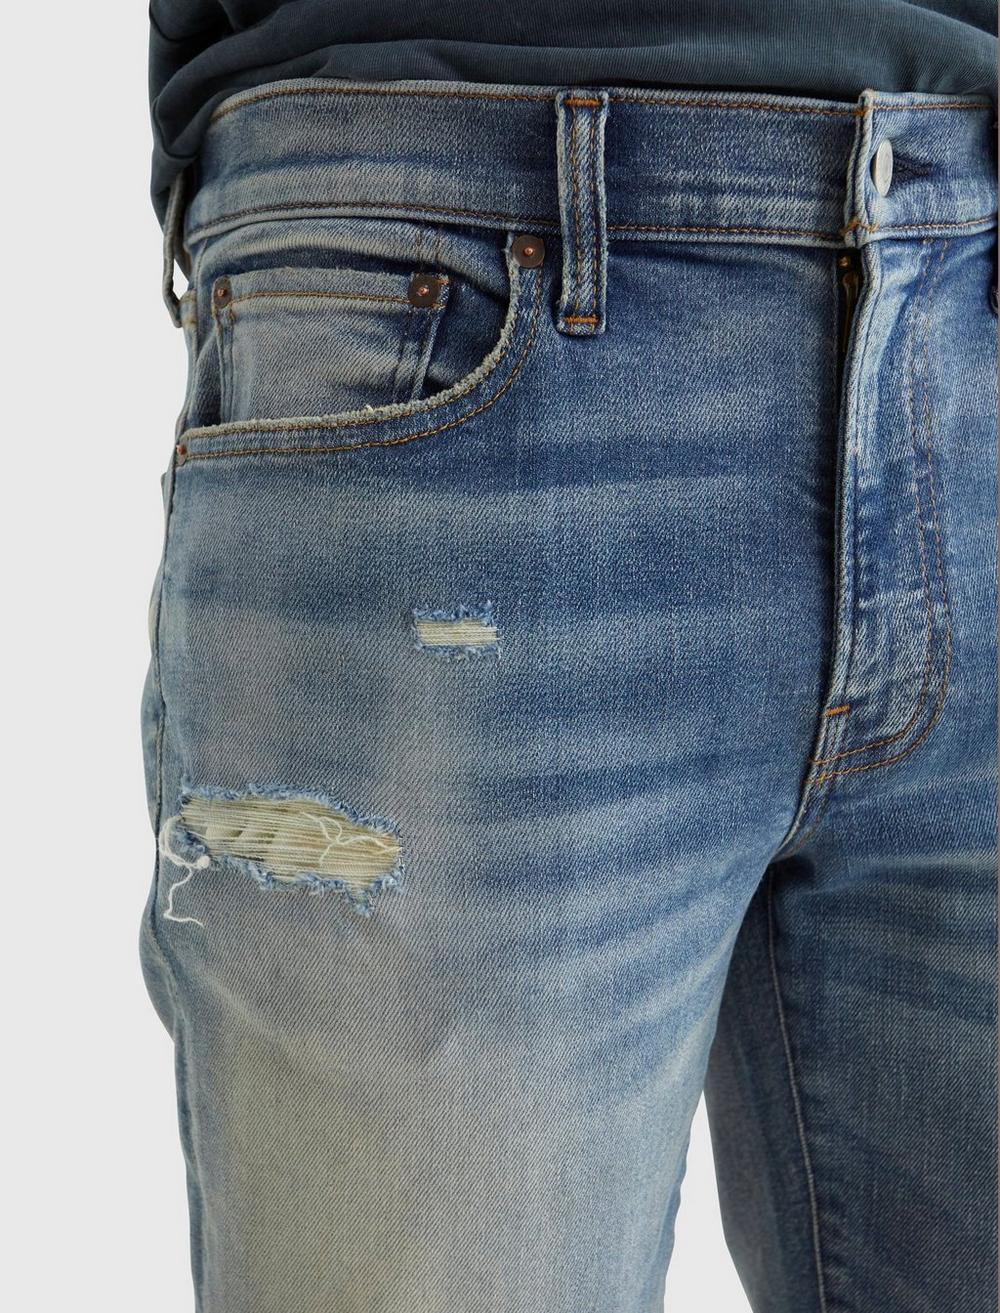 410 ATHLETIC STRAIGHT 4-WAY STRETCH JEAN, image 4